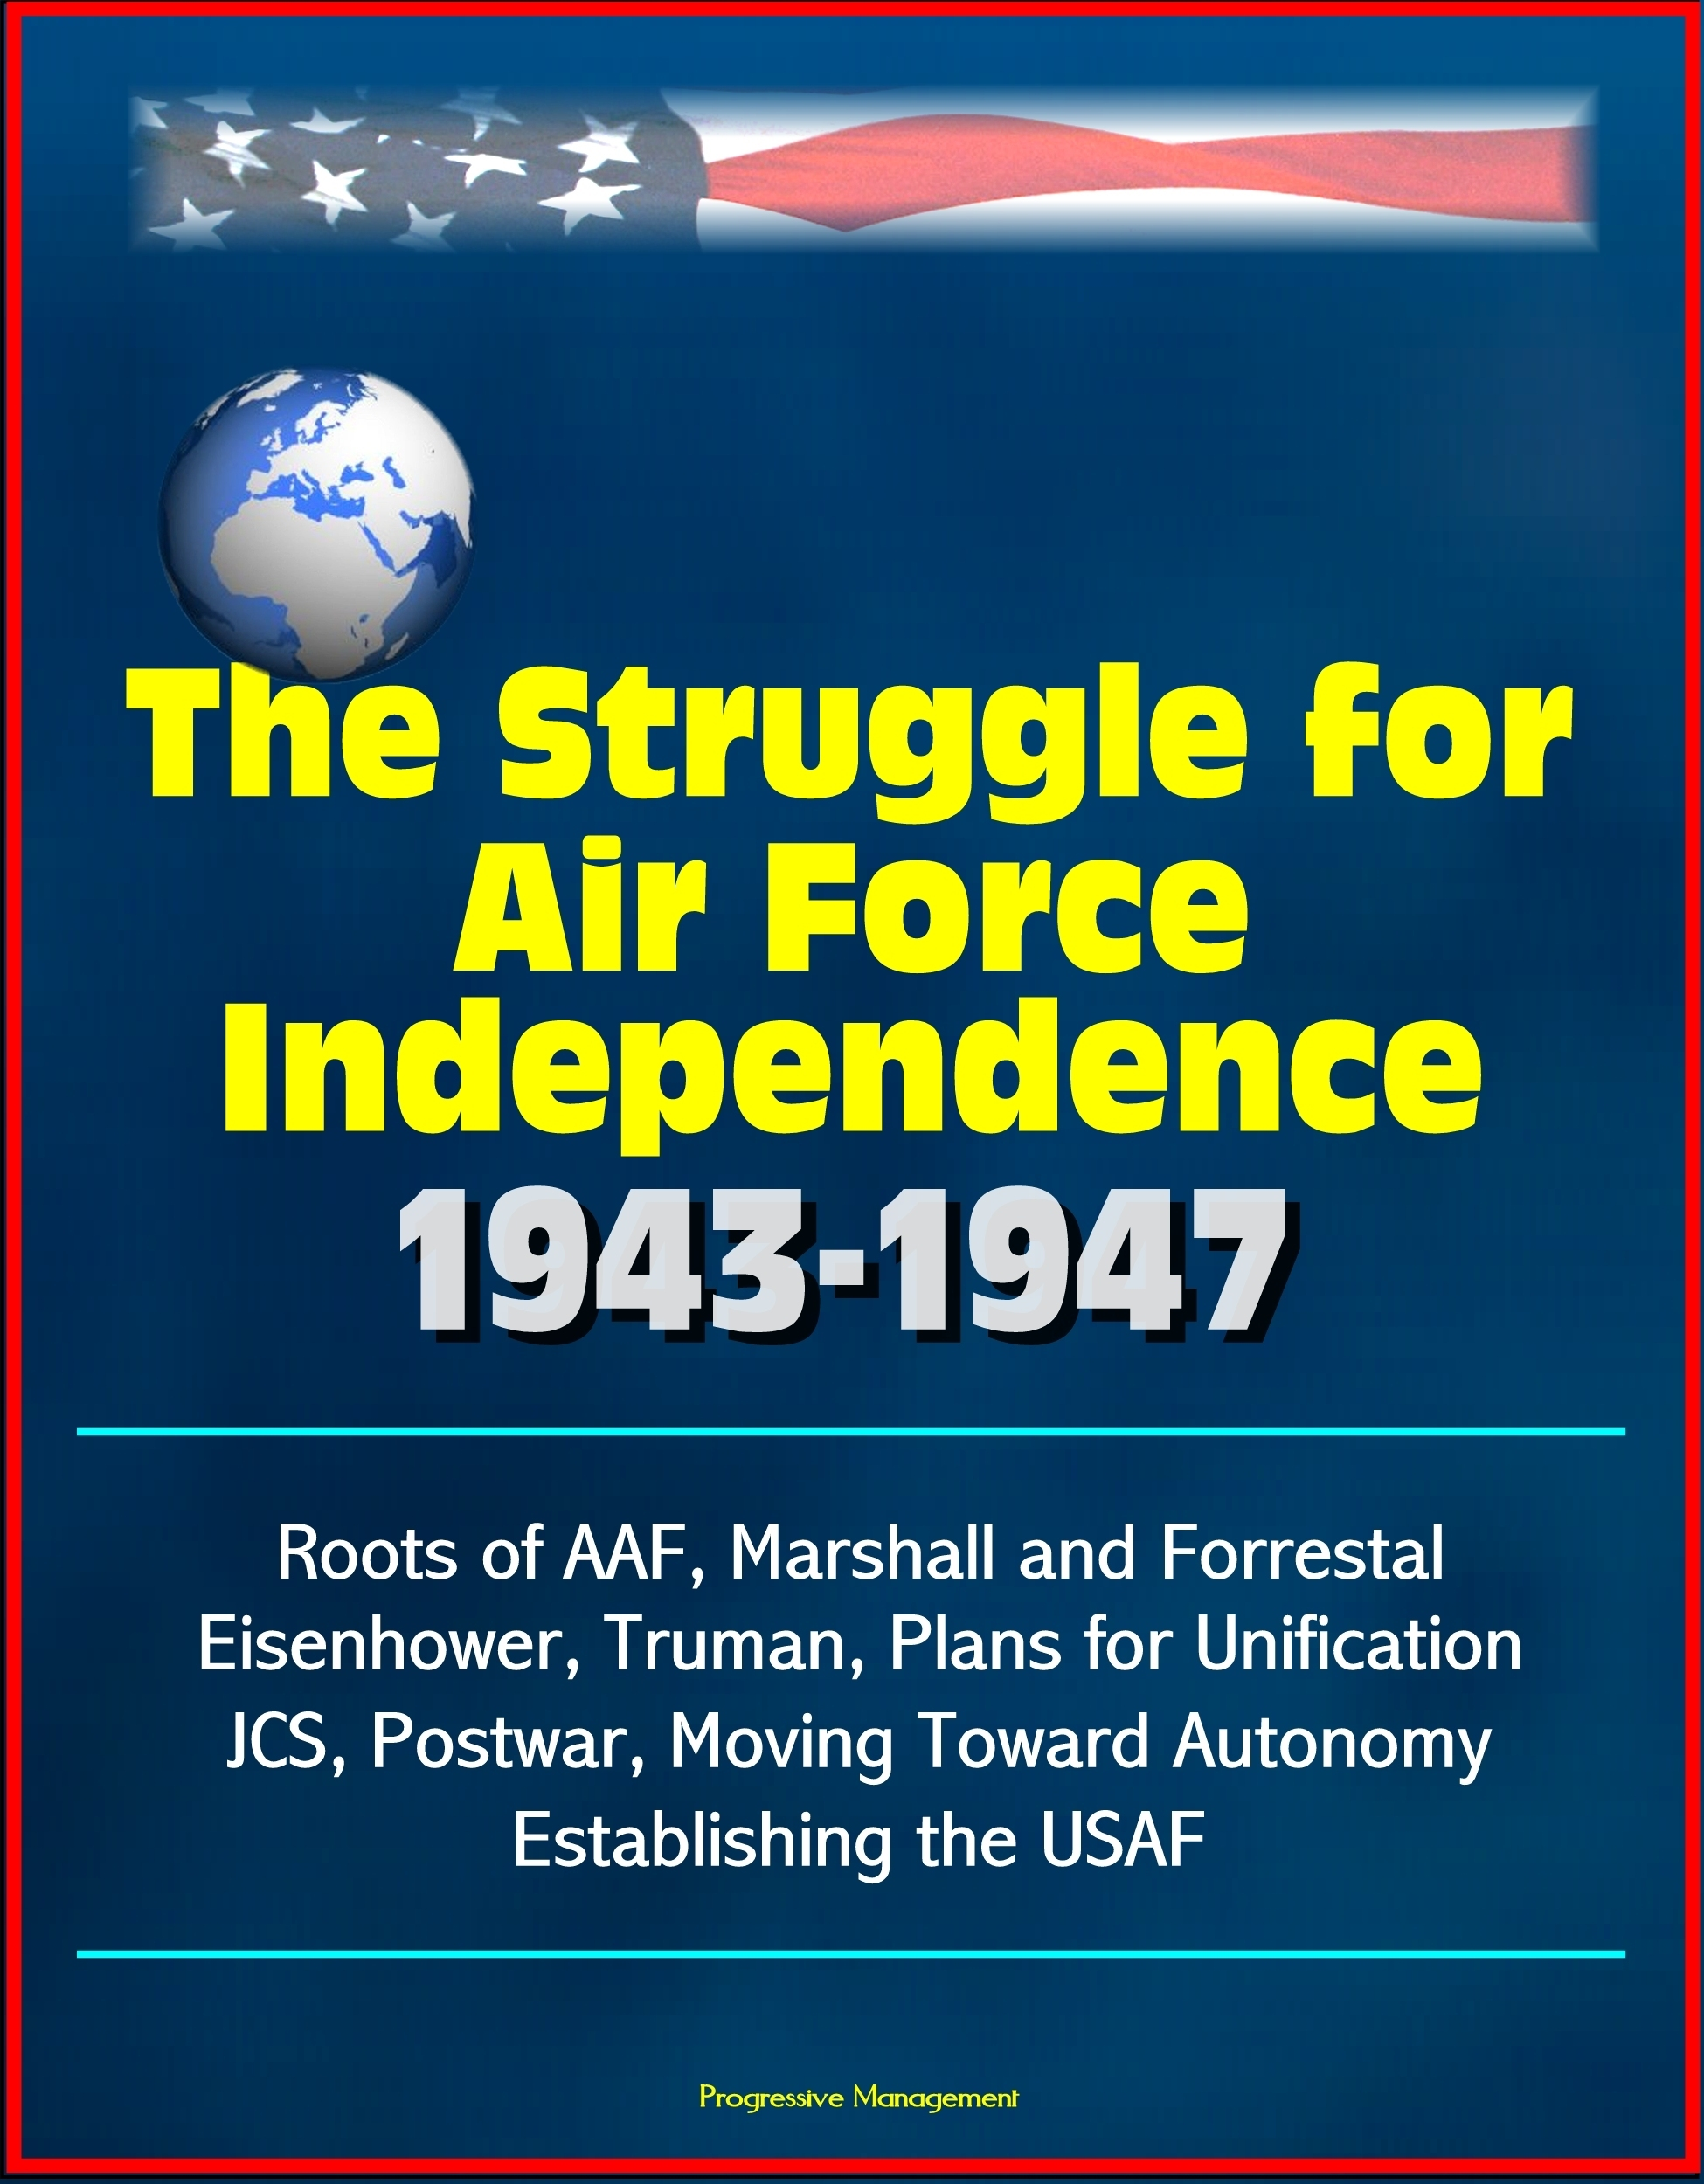 The Struggle for Air Force Independence 1943-1947: Roots of AAF, Marshall and Forrestal, Eisenhower, Truman, Plans for Unification, JCS, Postwar, Moving Toward Autonomy, Establishing the USAF Progressive Management